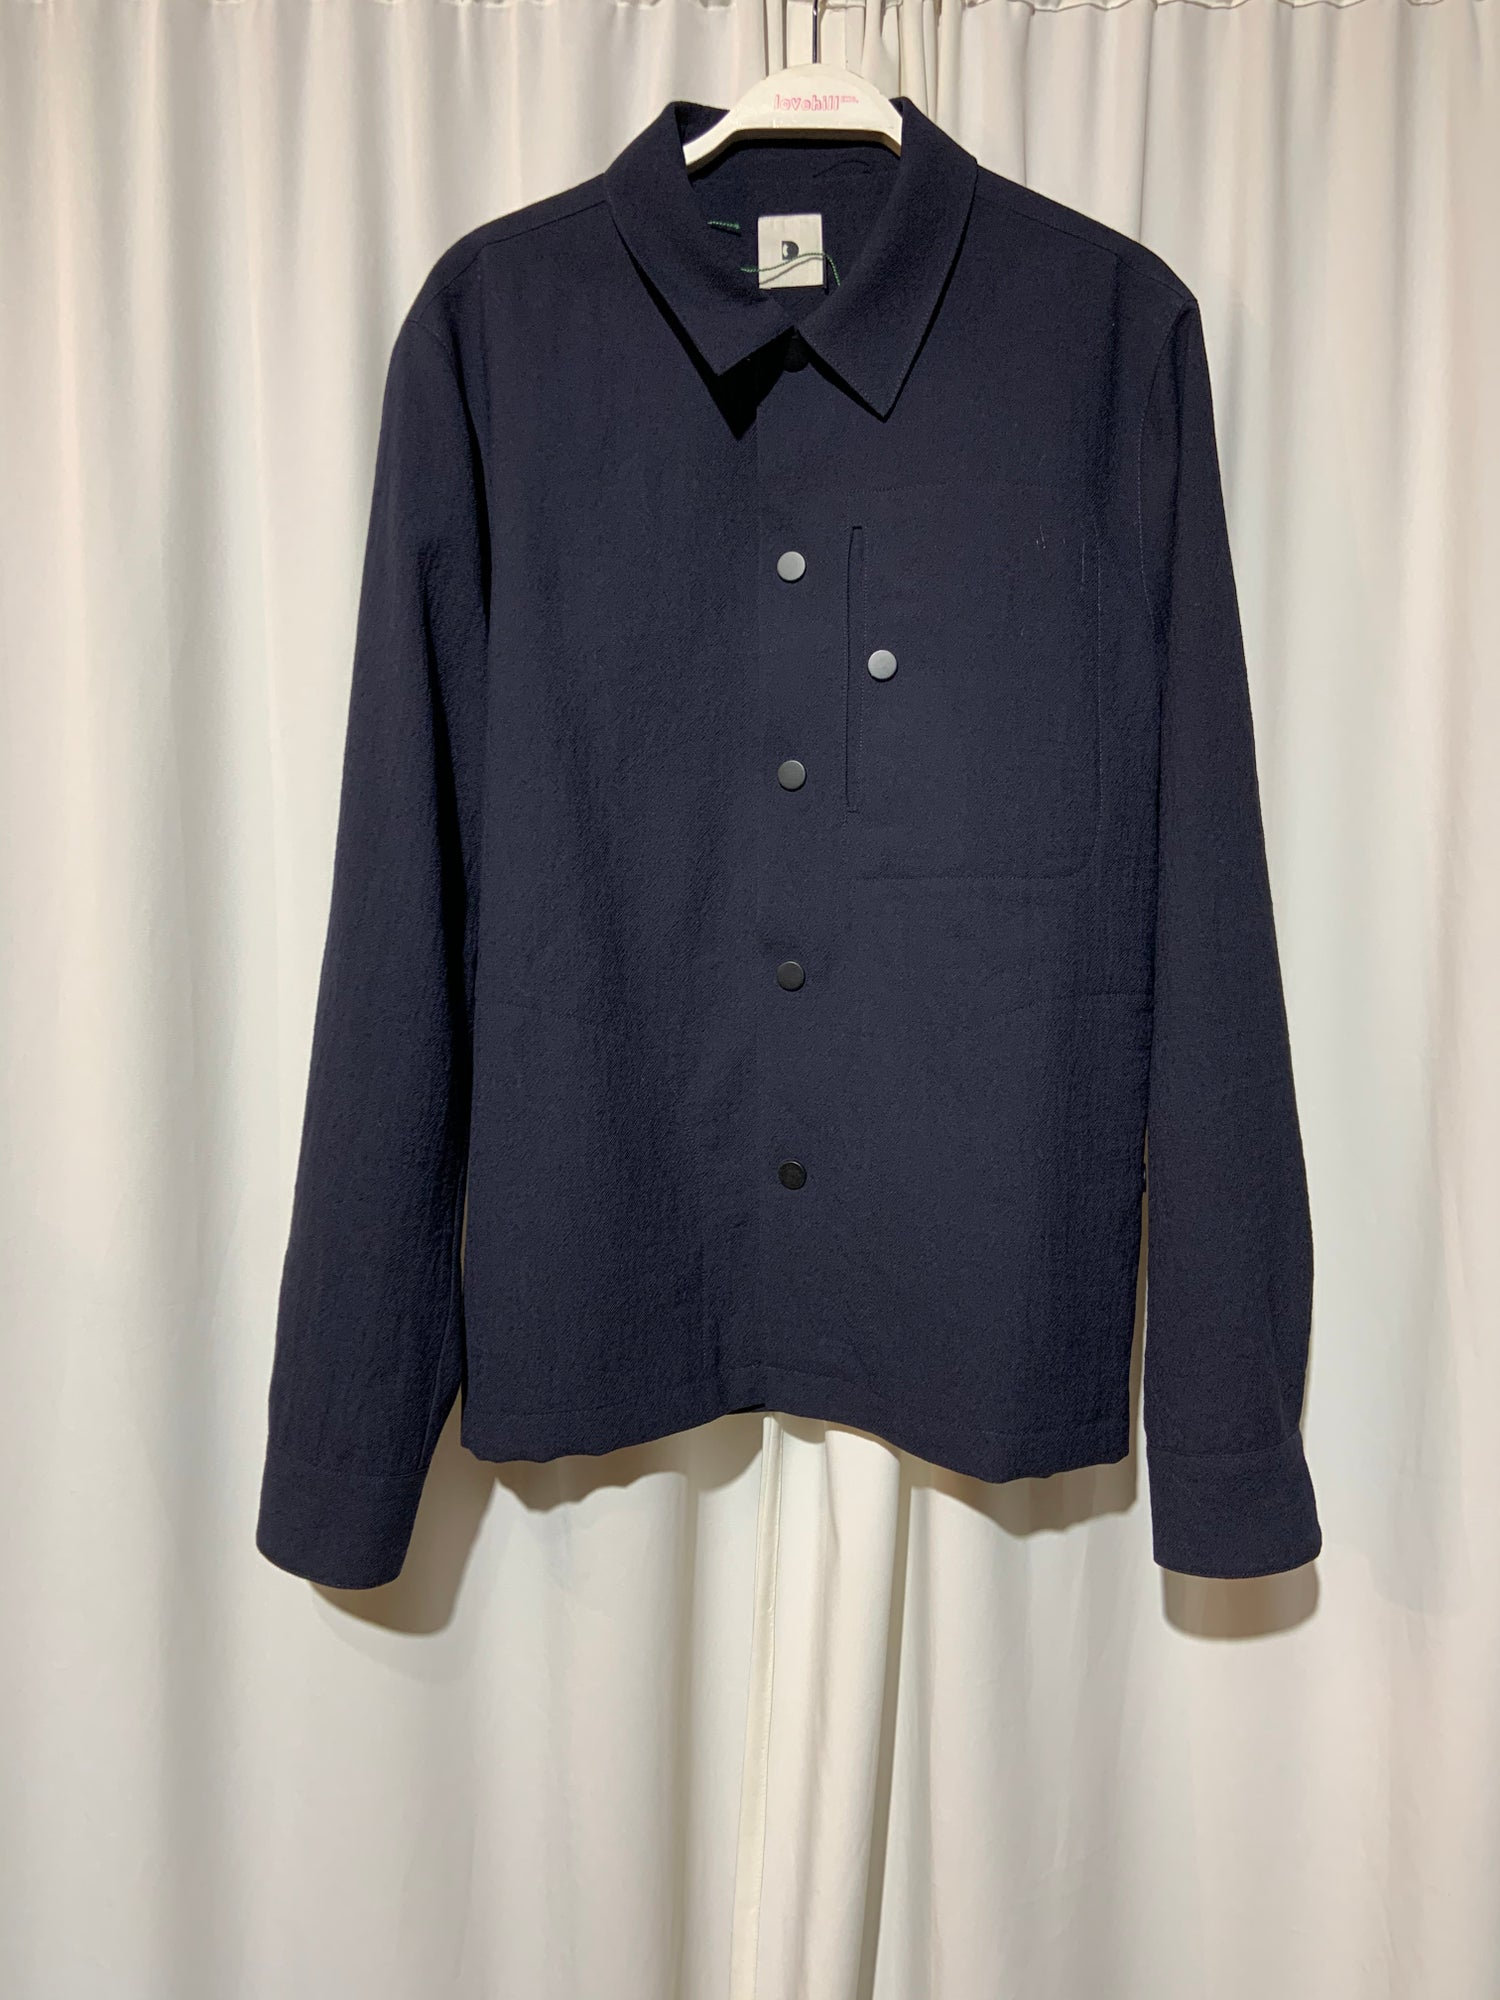 Image of DELKATESSEN Jacket Navy